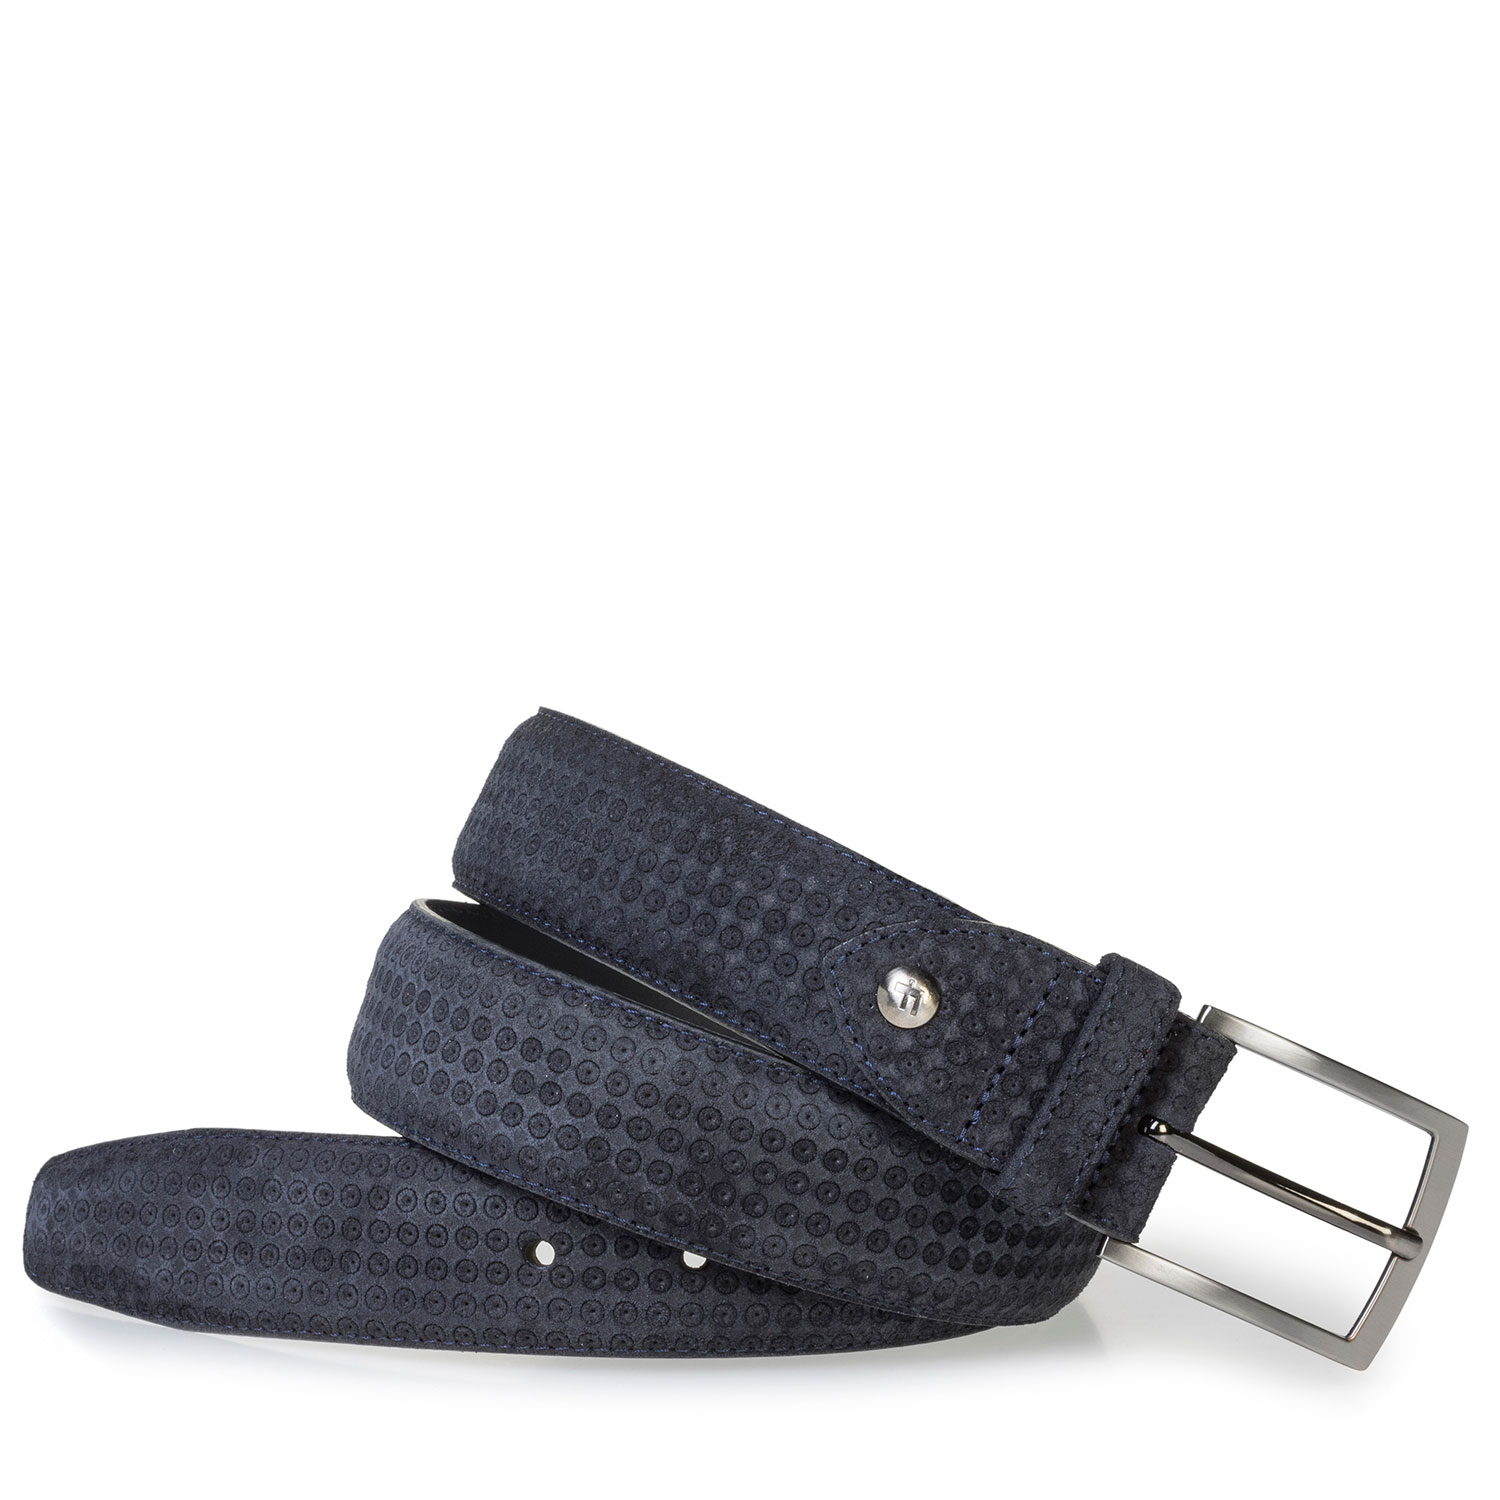 75200/77 - Blue suede leather belt with print